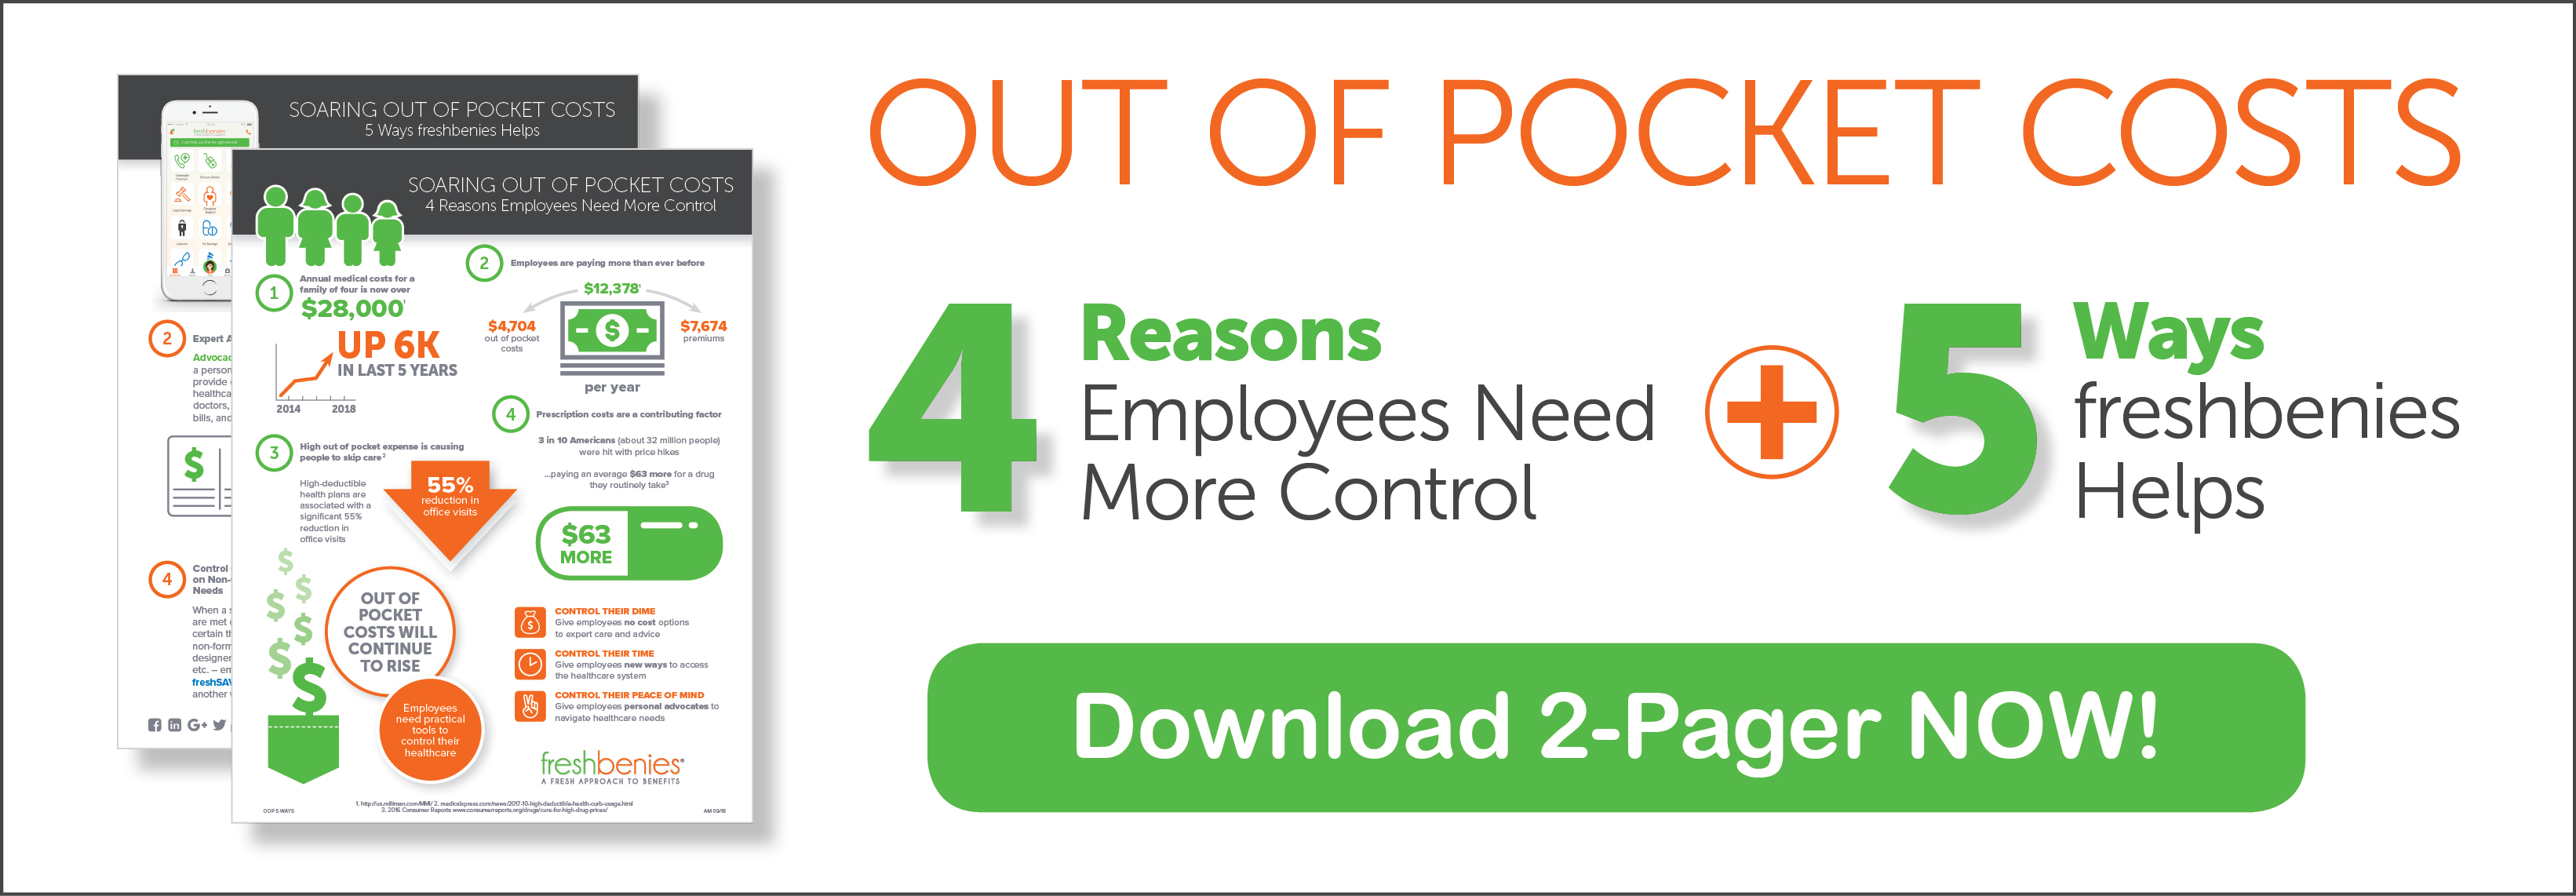 5 ways to help with out of pocket costs